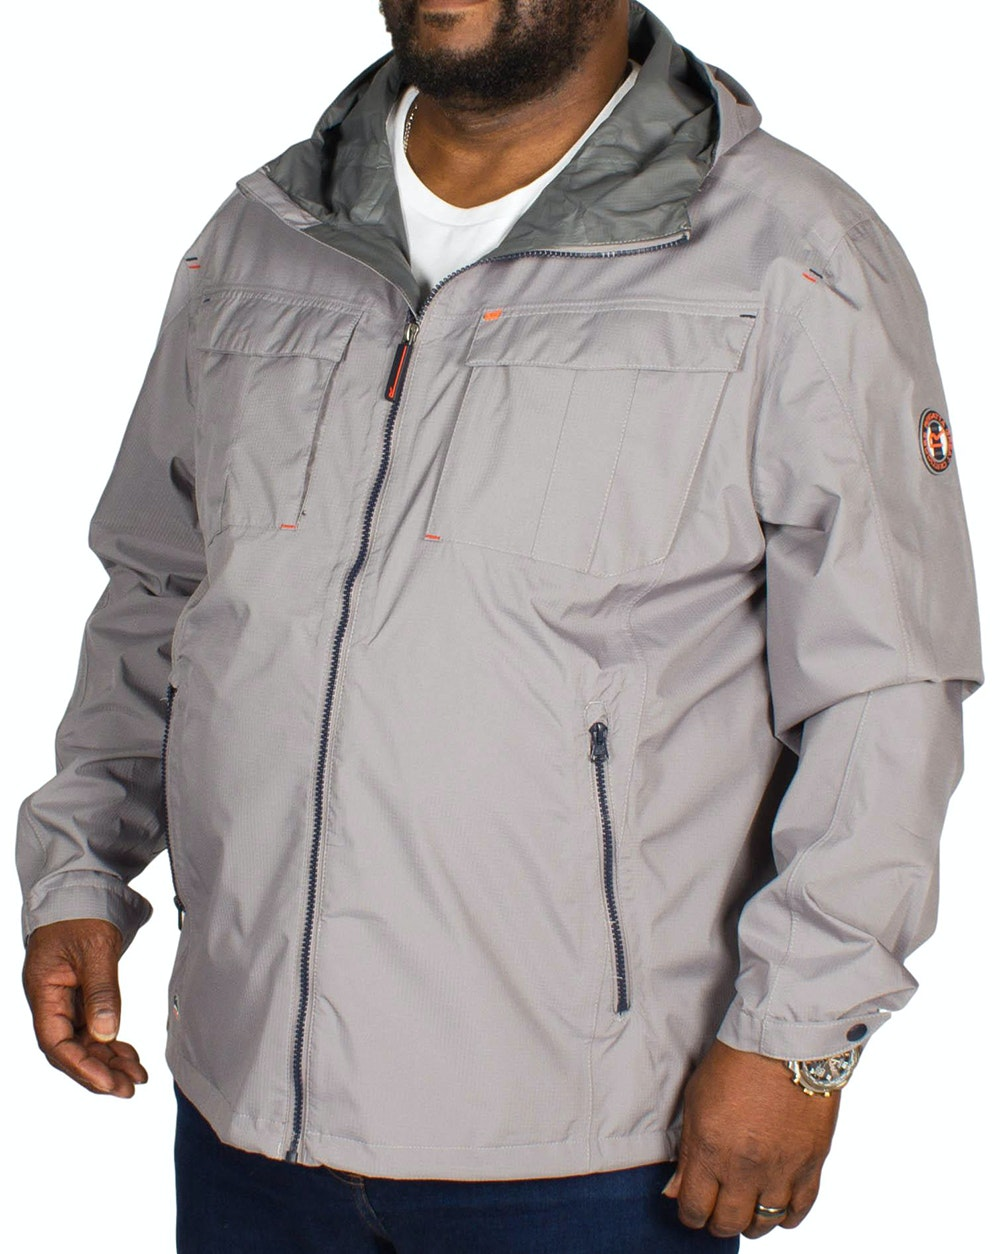 Regatta Bardolf Waterproof Jacket - Grey